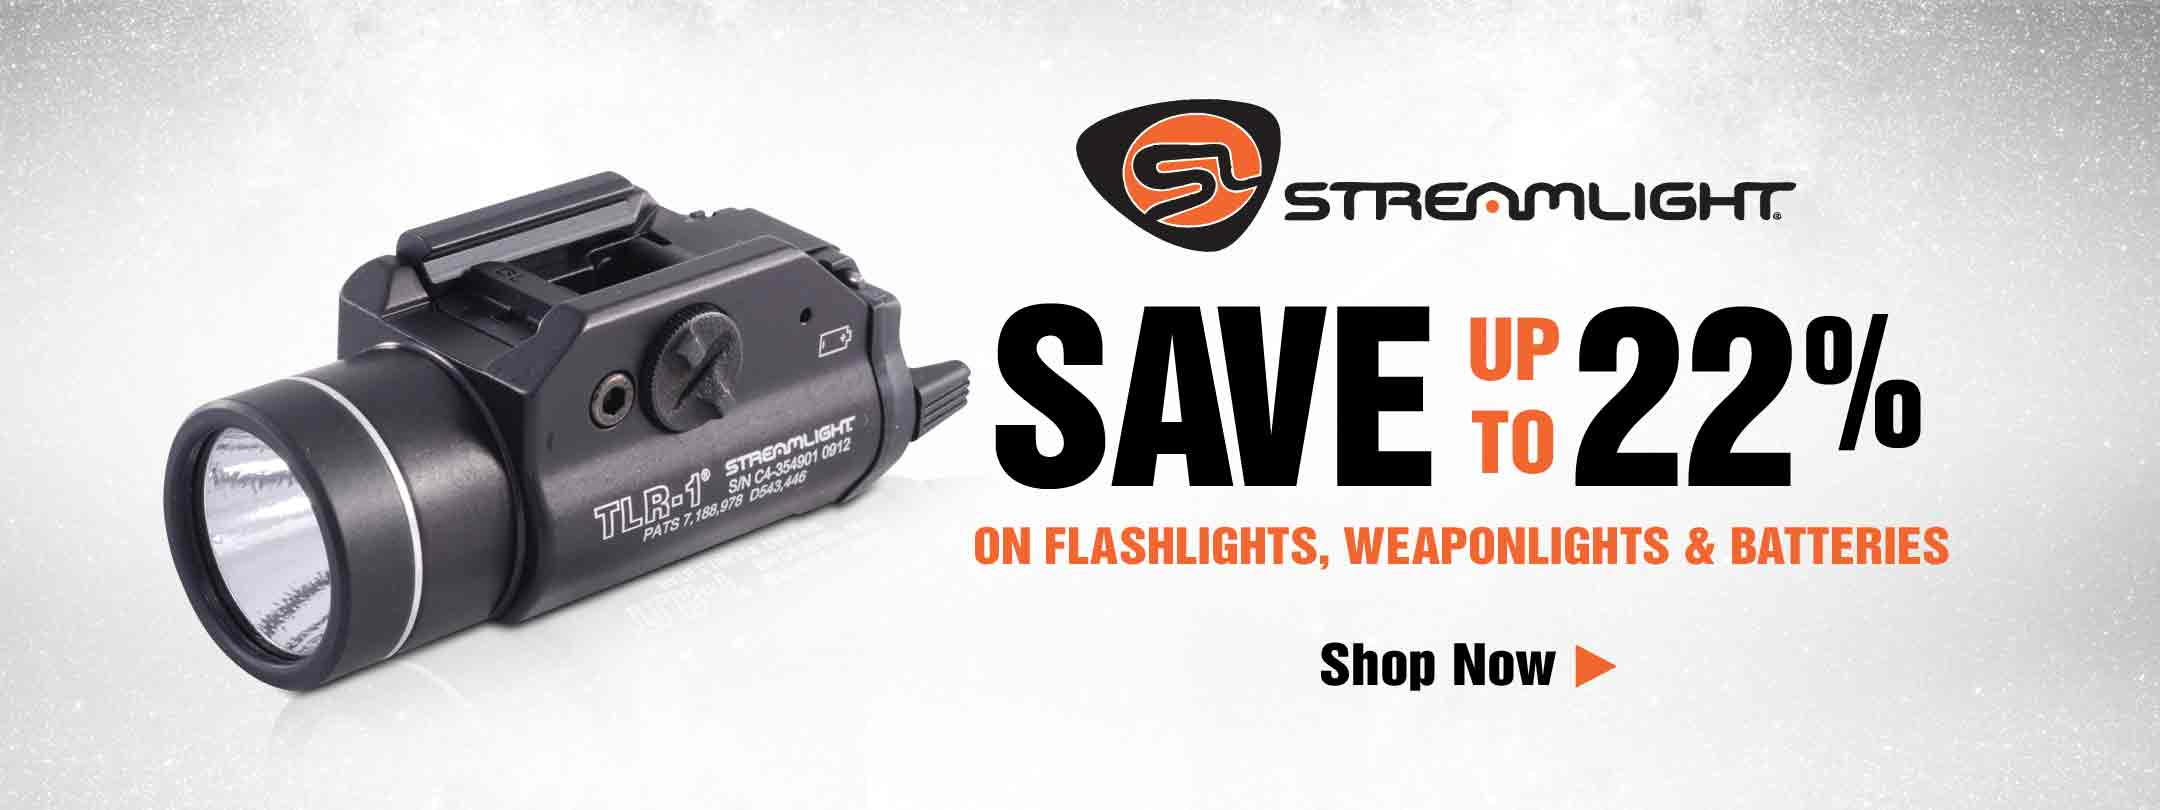 Save up to 22% on Streamlight